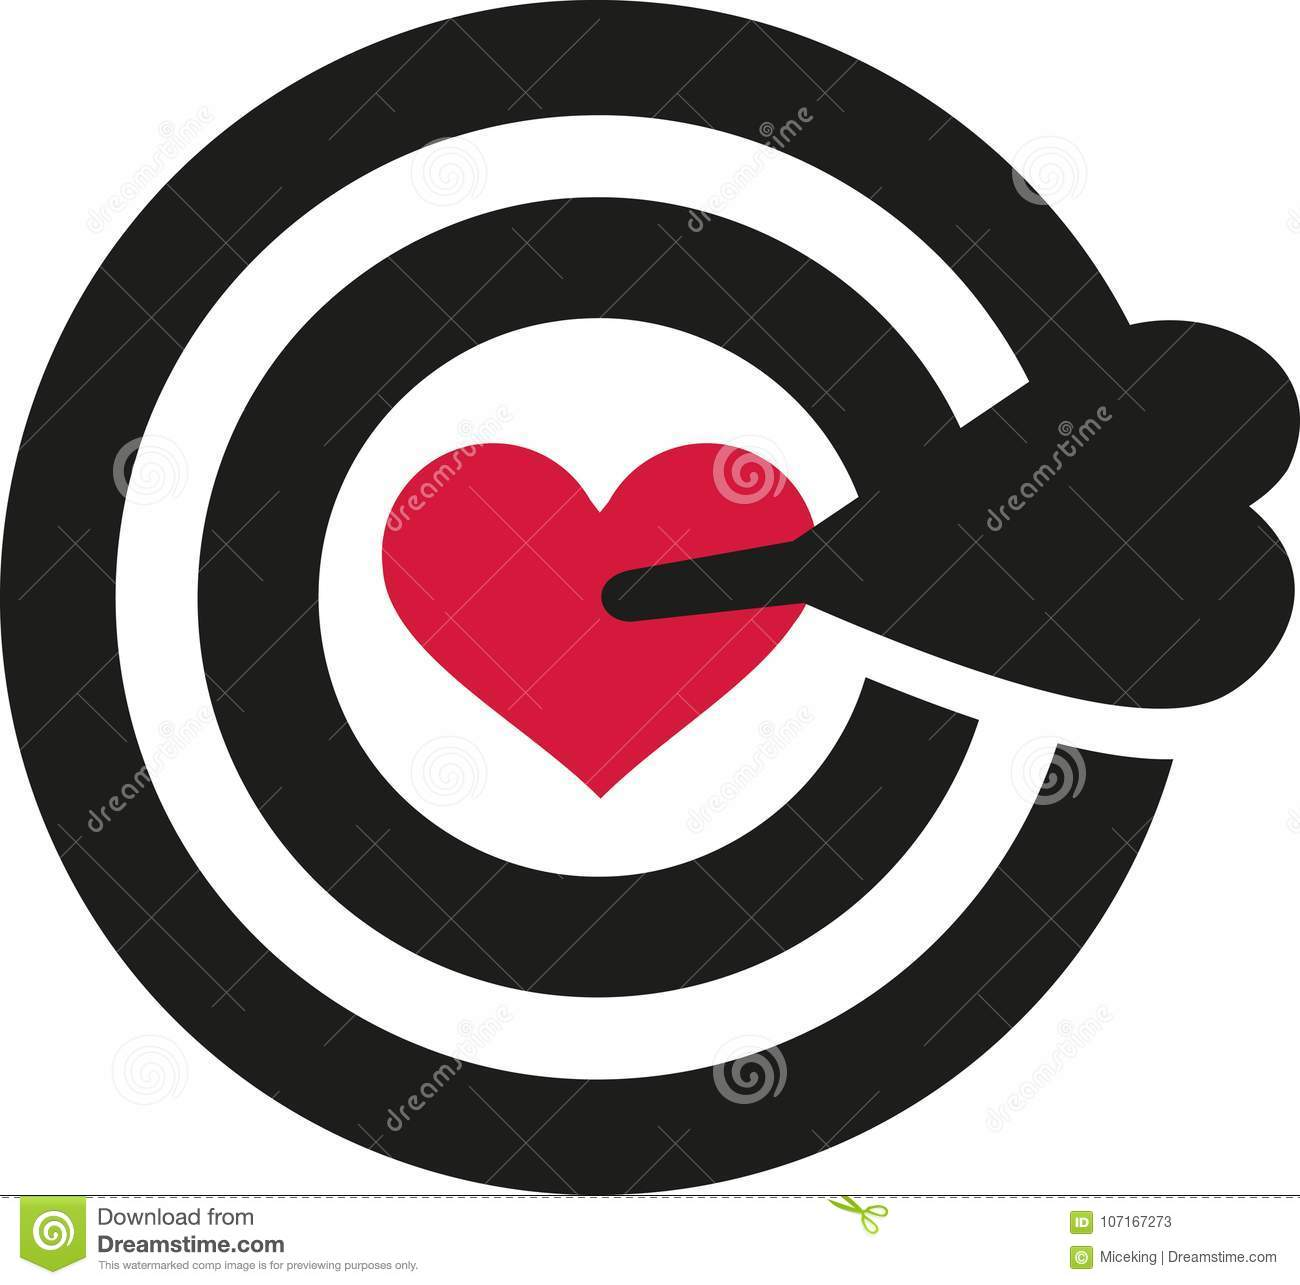 Target With Heart In The Middle Stock Vector Illustration Of